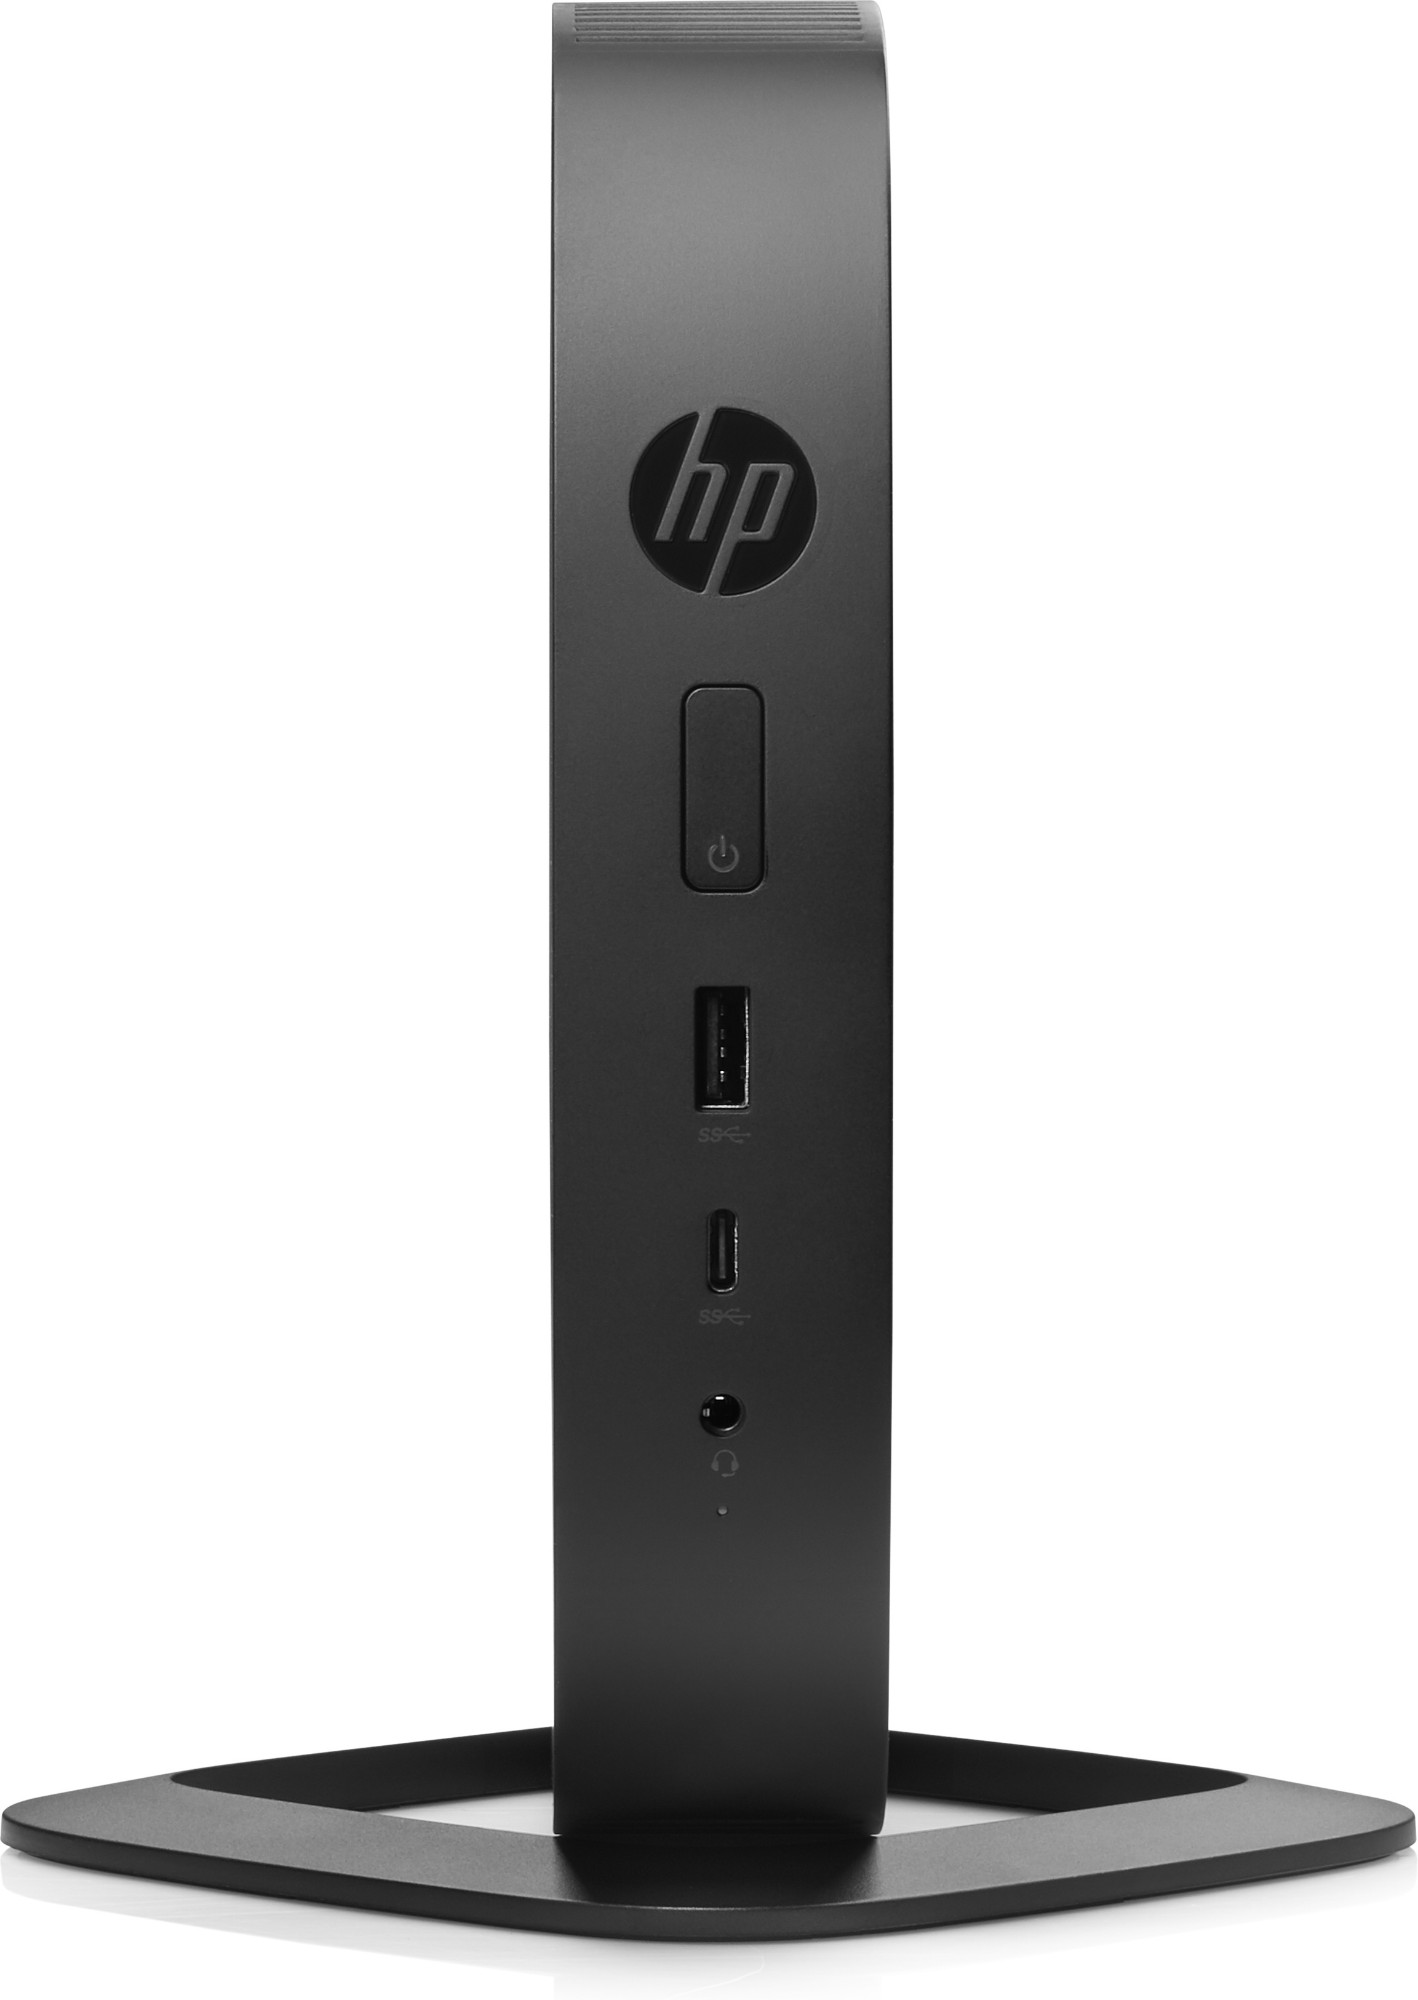 HP t530 Thin Client - AMD GX-215JJ - 4GB - 16GB - ThinPro